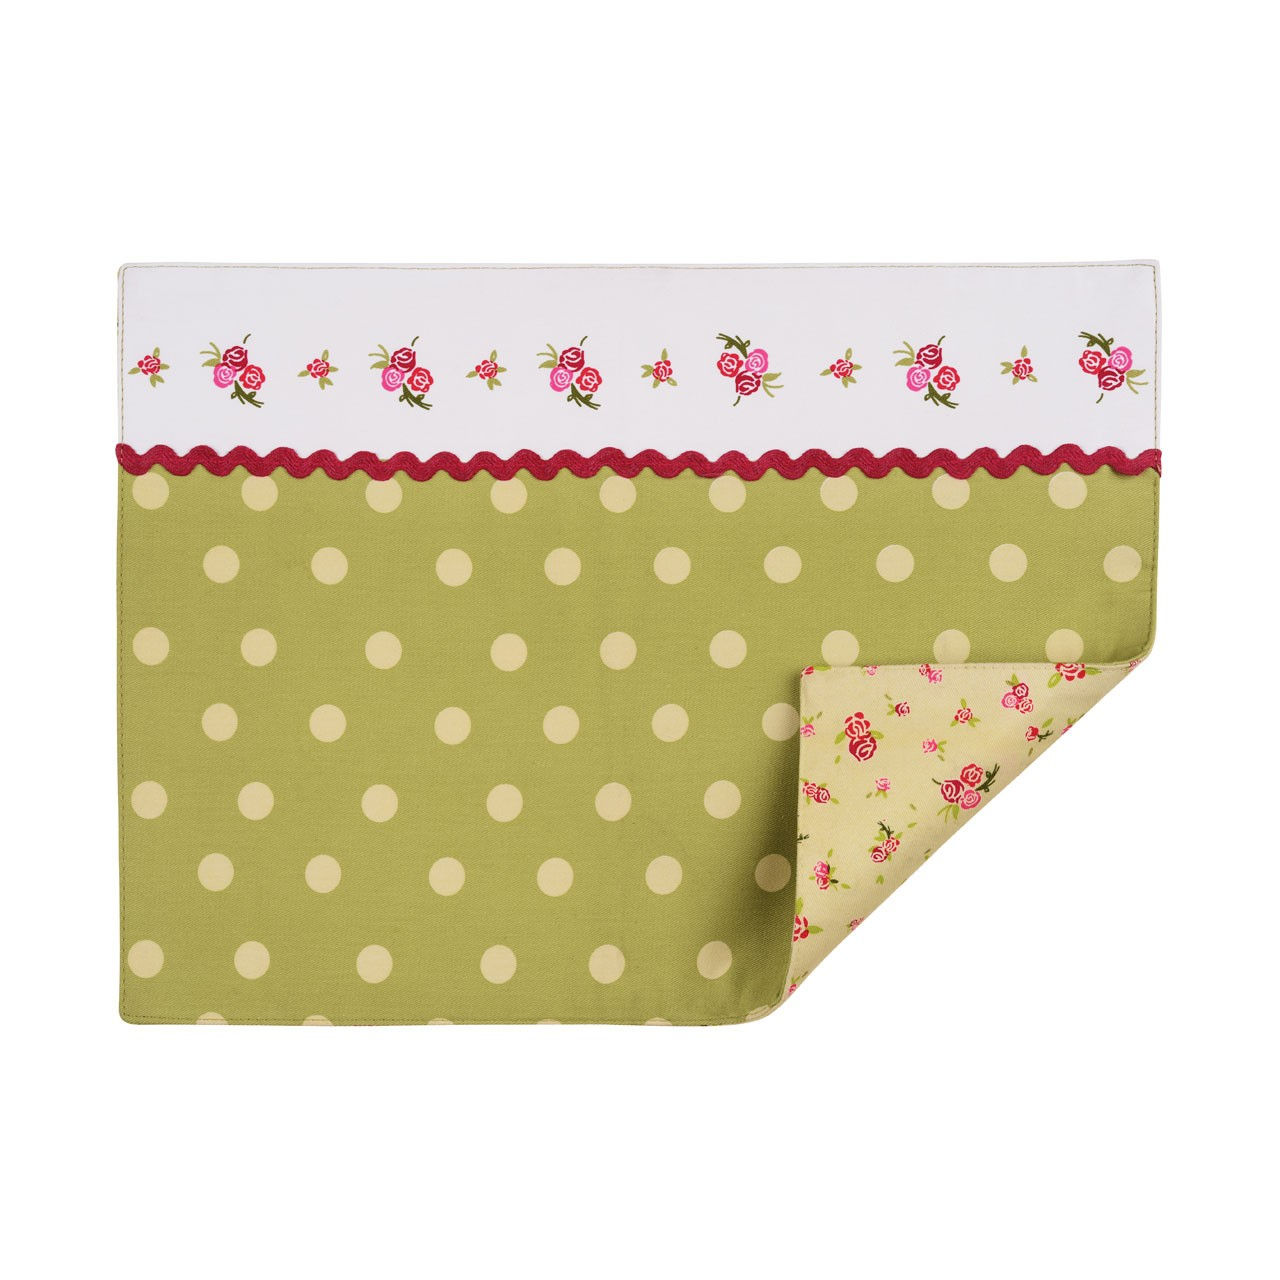 Rose Cotton Cottage Placemats - Set of 4